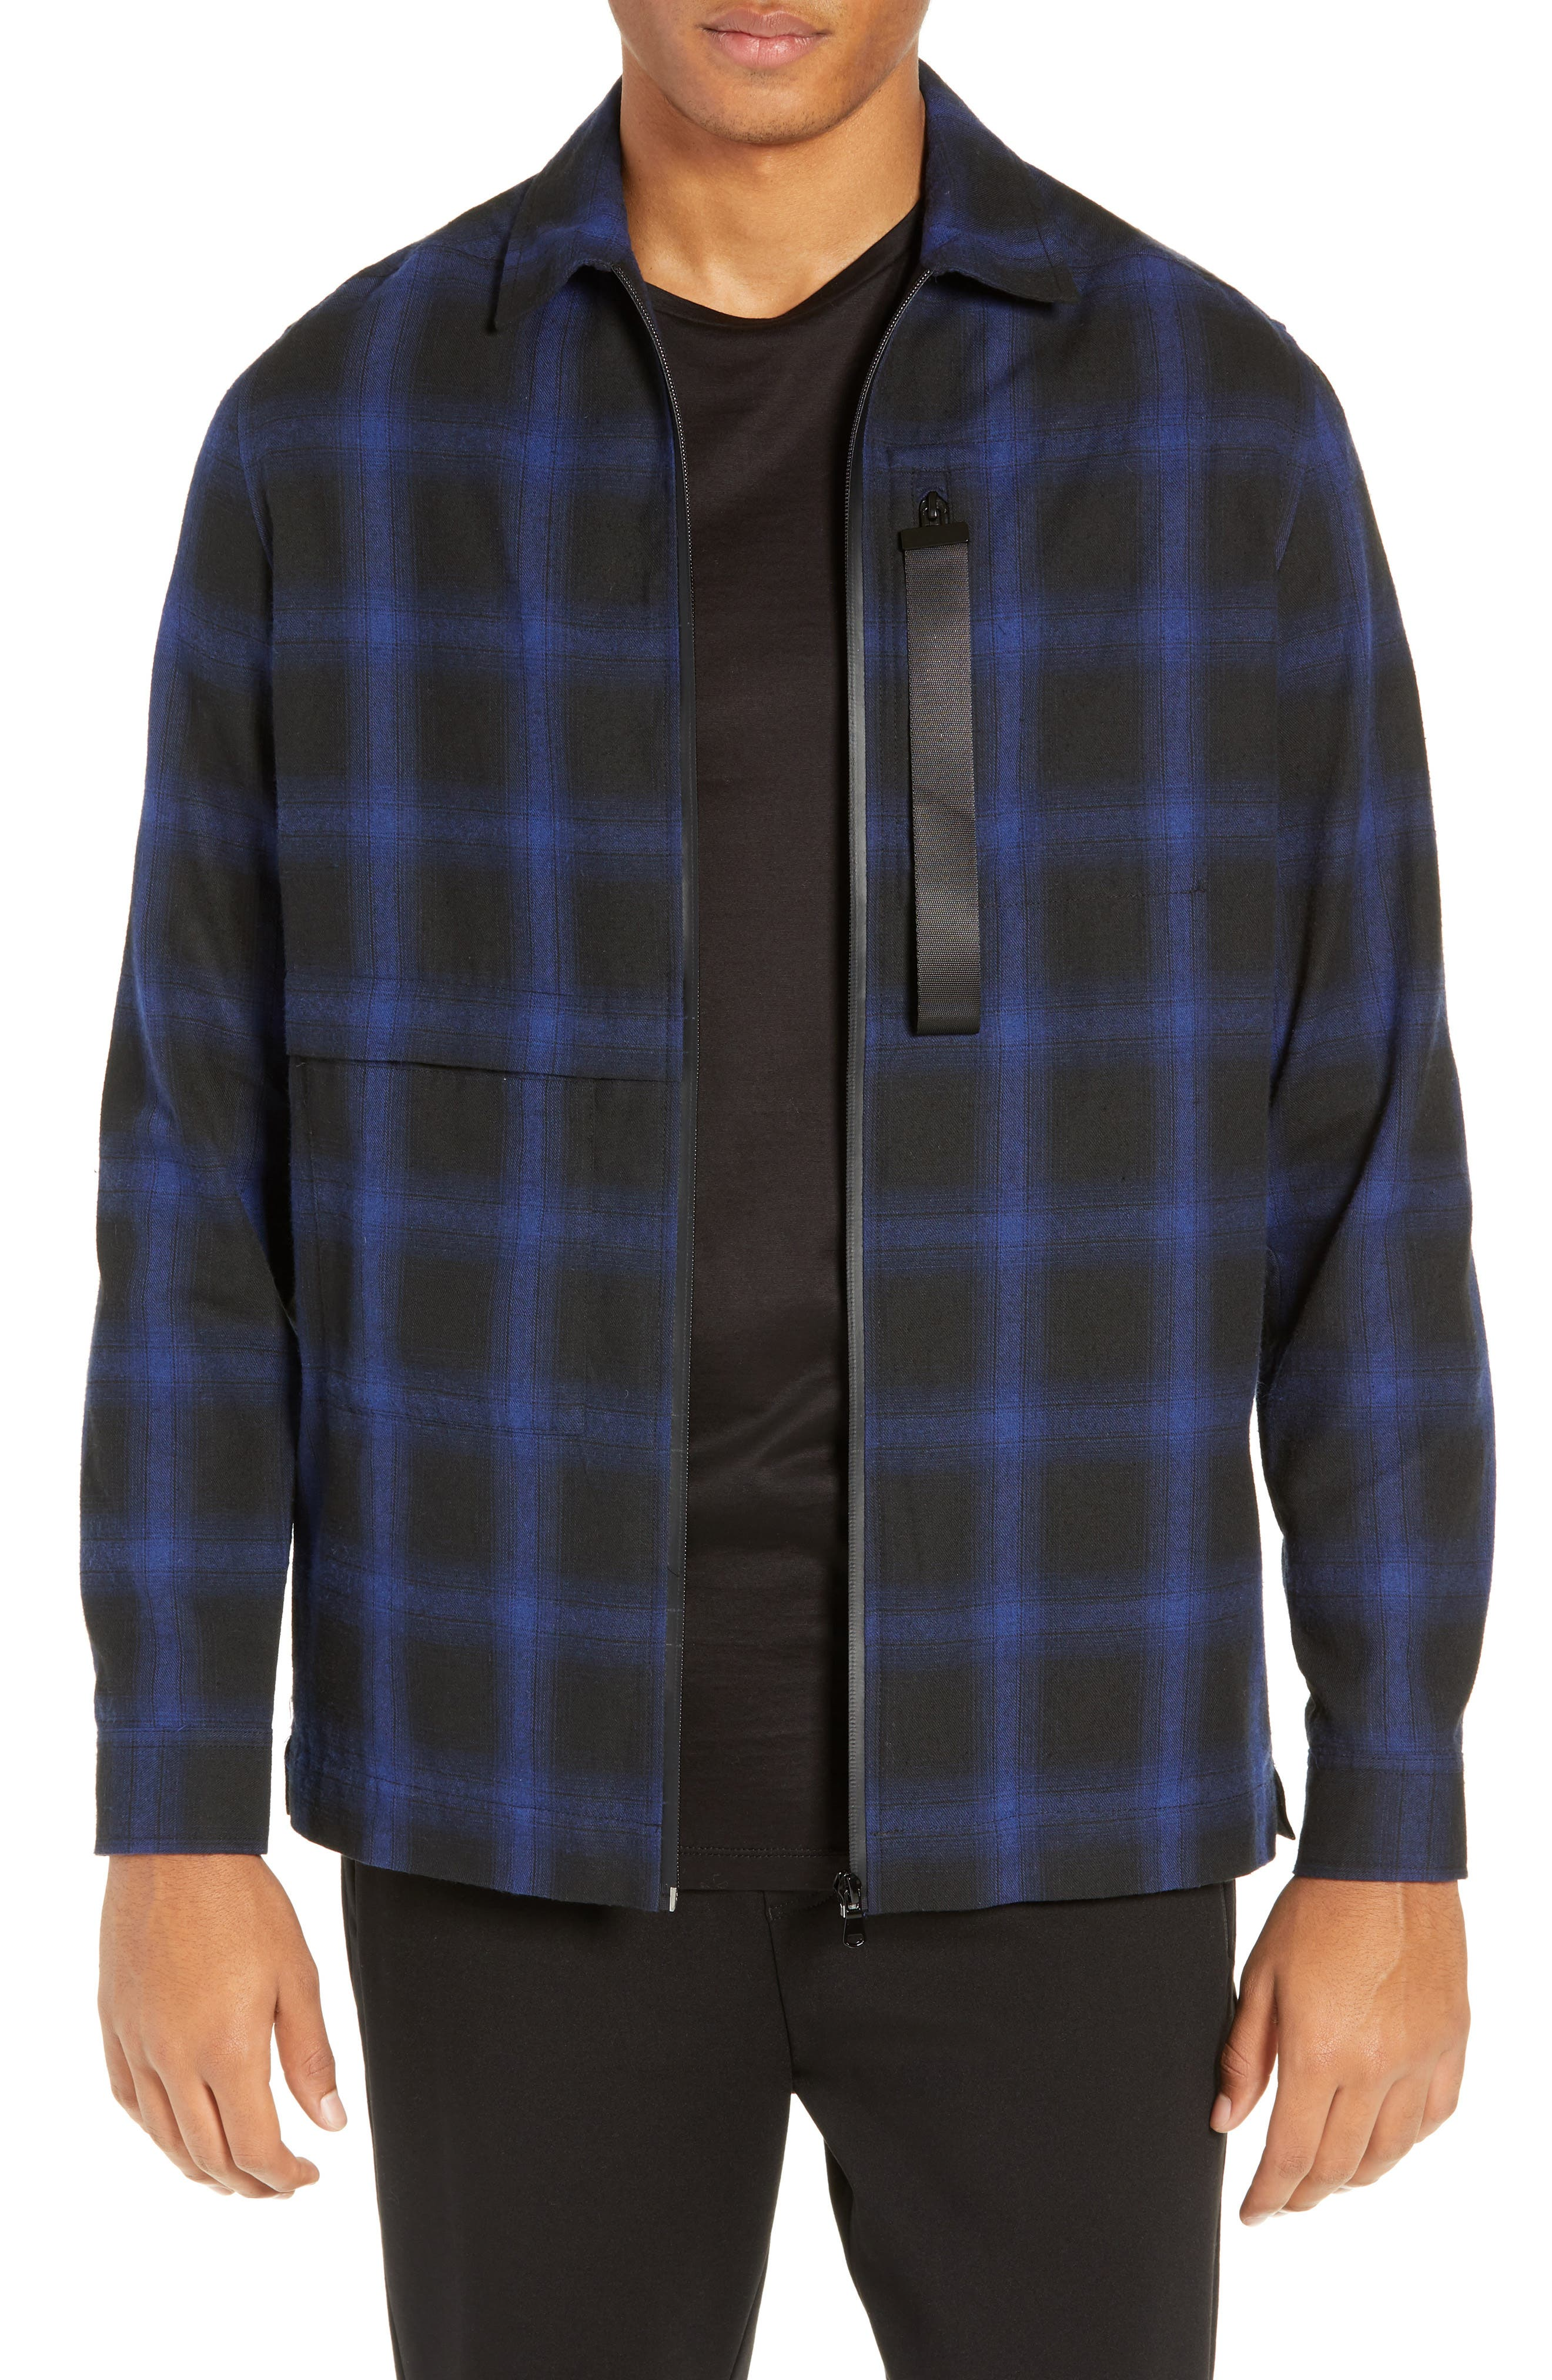 River Stone Slim Fit Plaid Zip Front Flannel Shirt Jacket